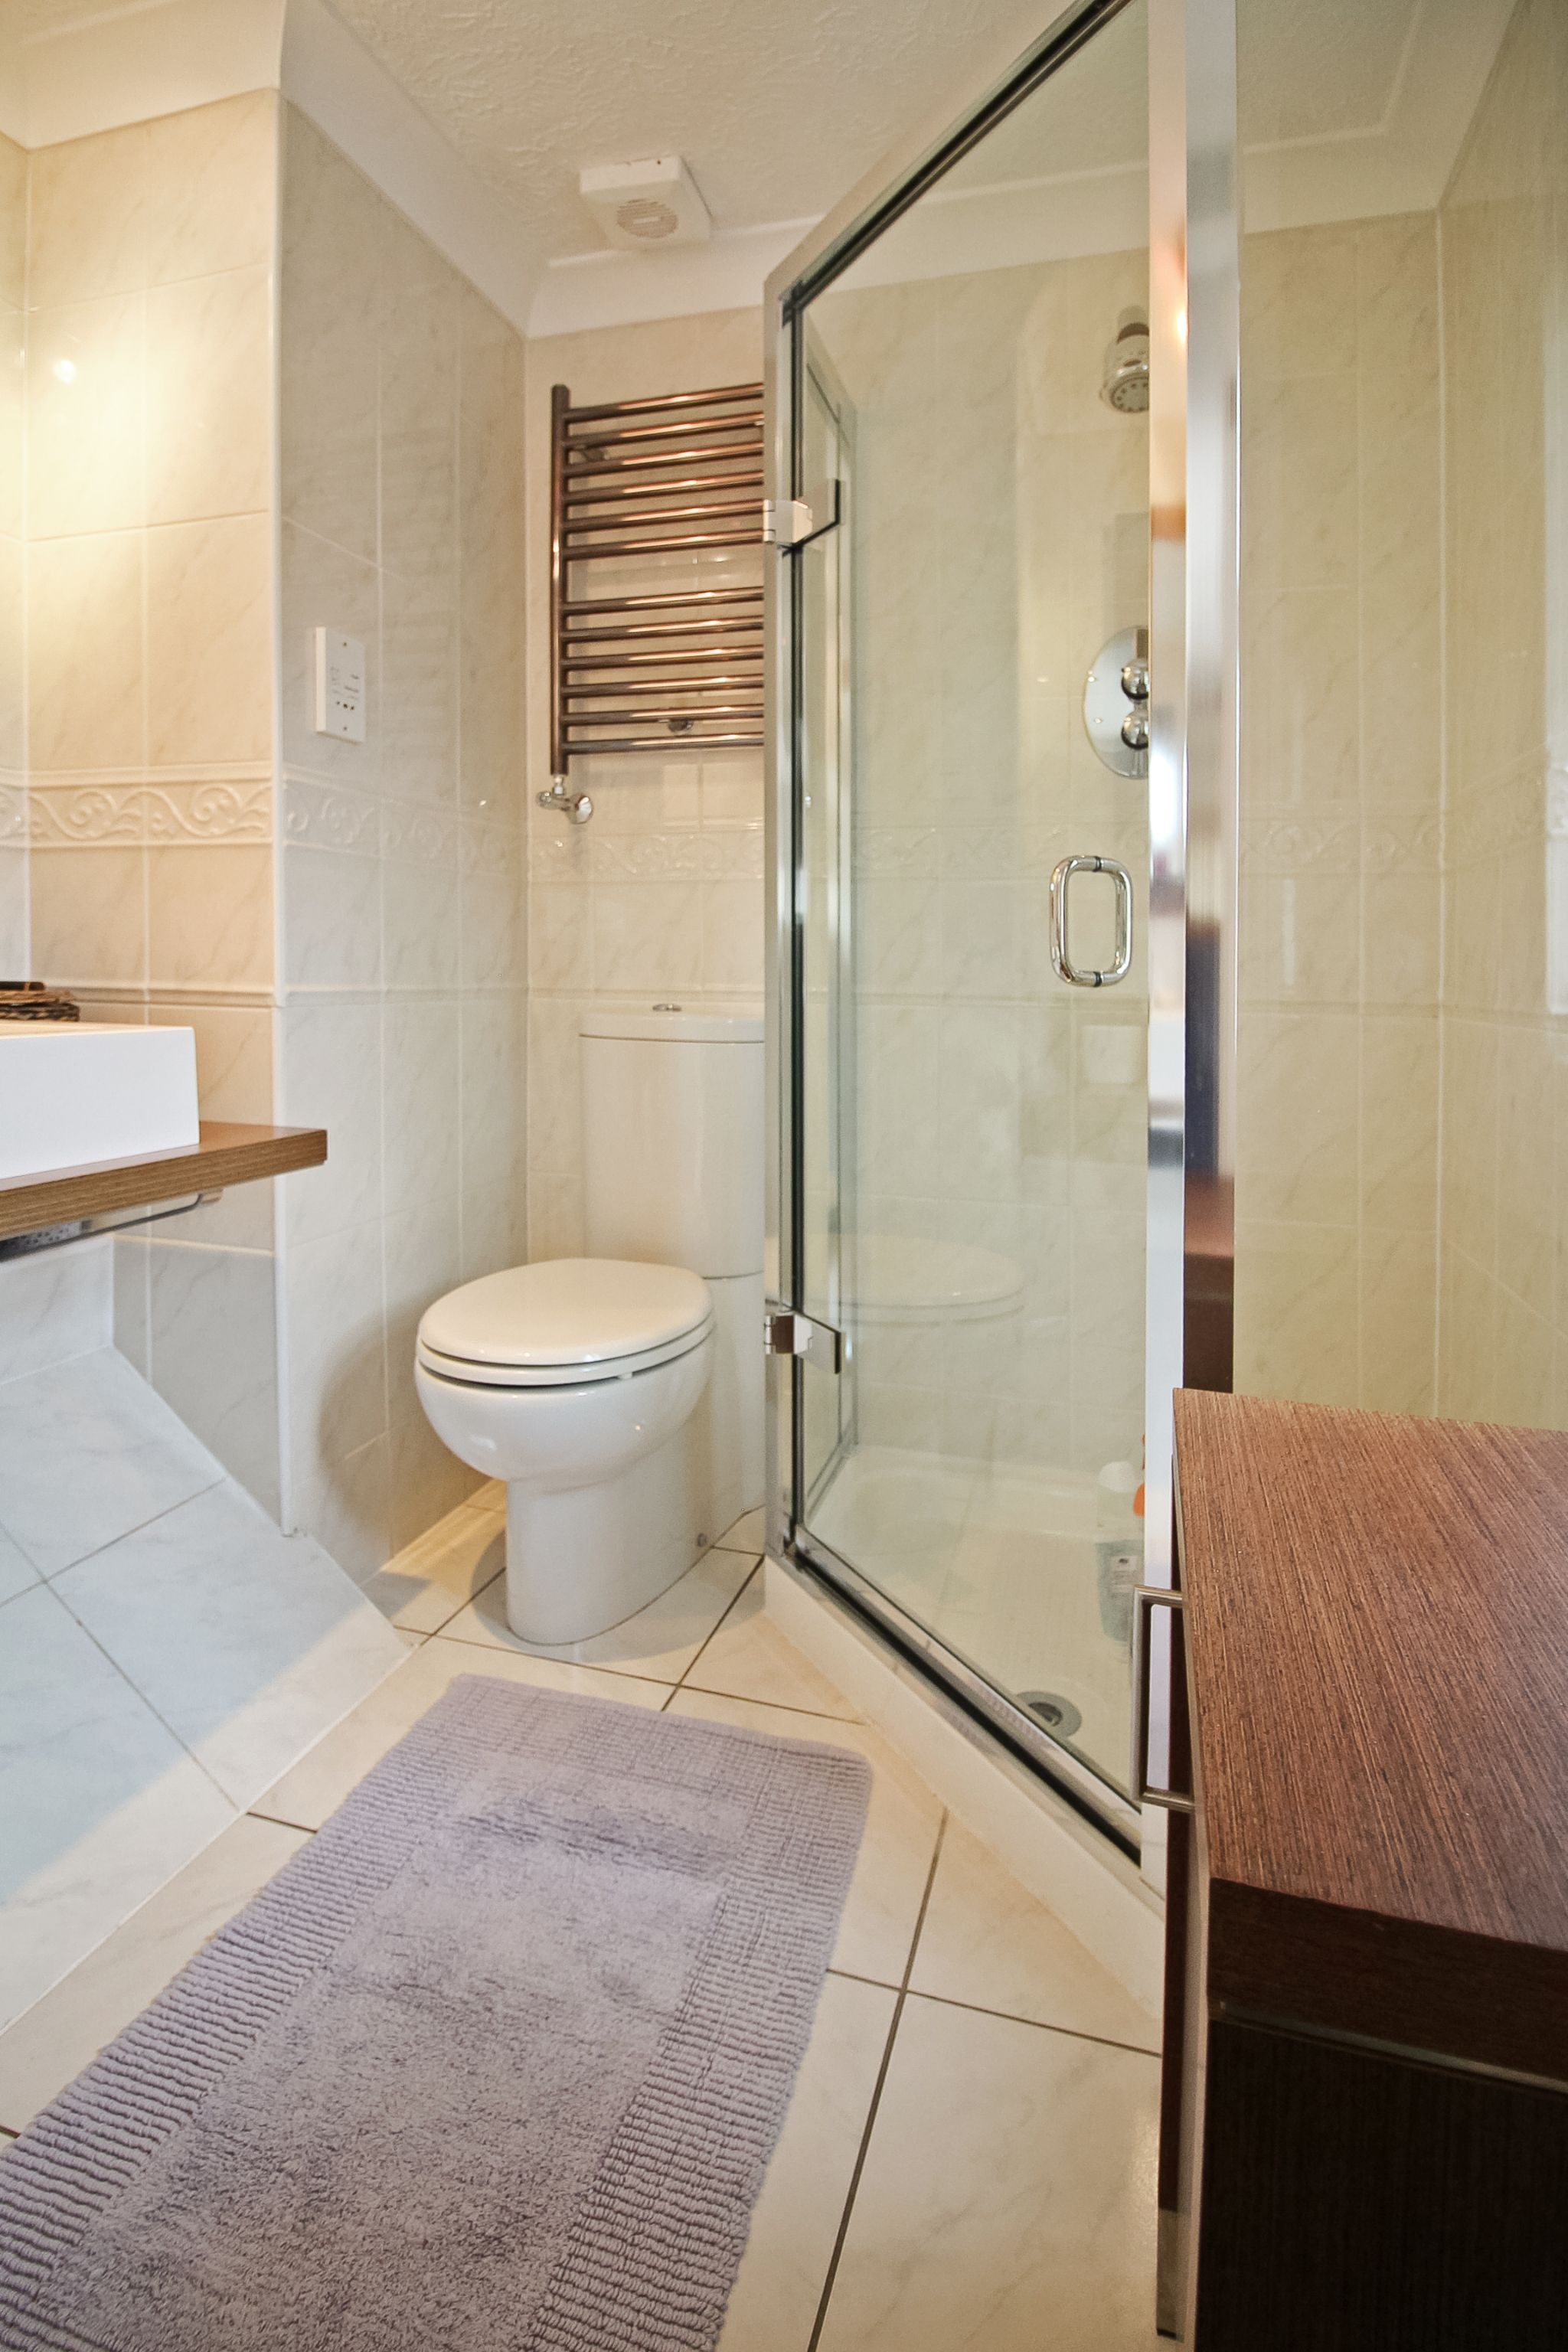 4 bedroom detached house For Sale in Solihull - Photograph 9.